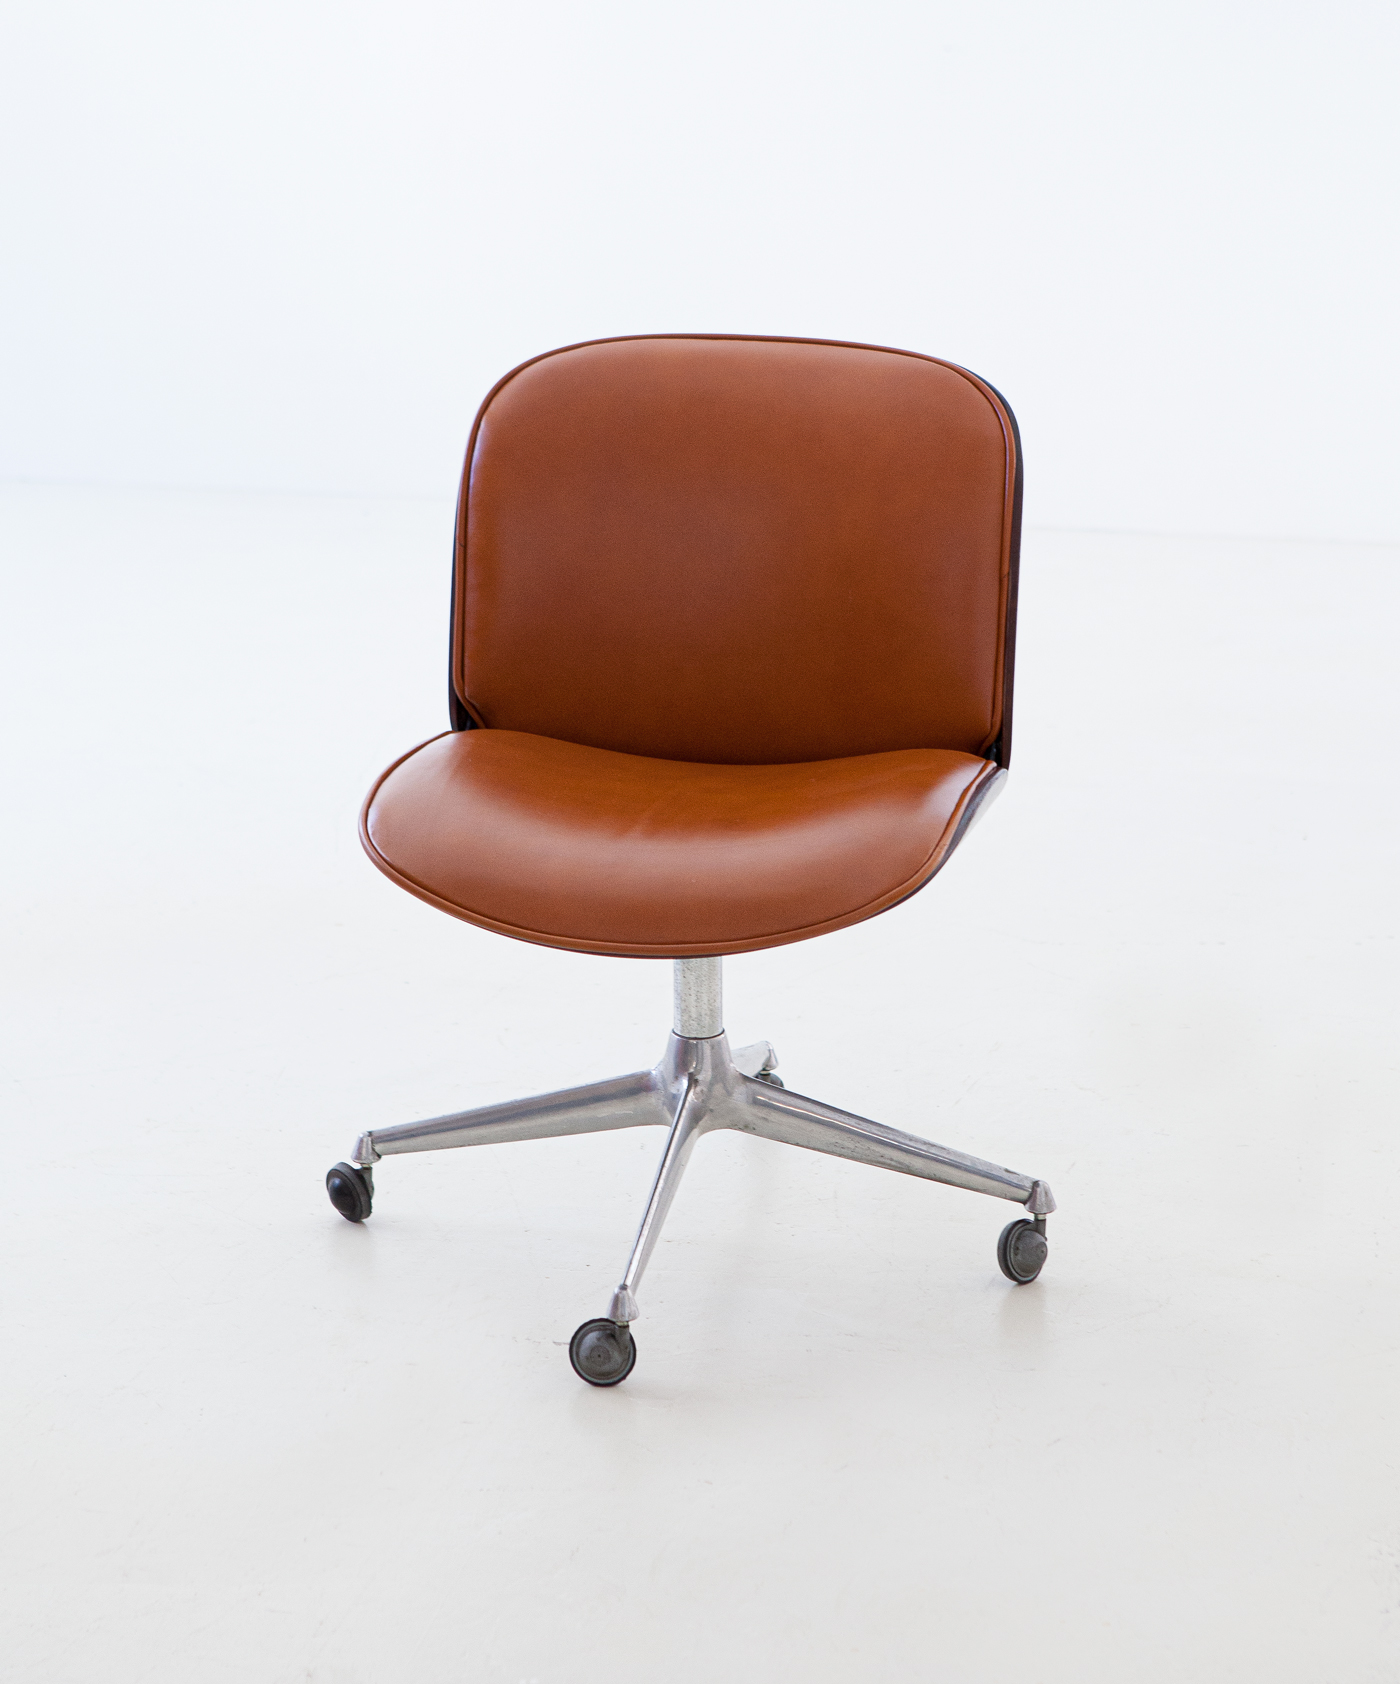 1950s-rosewood-and-cognac-leather-swivel-chair-by-ico-parisi-for-mim-7-se328a